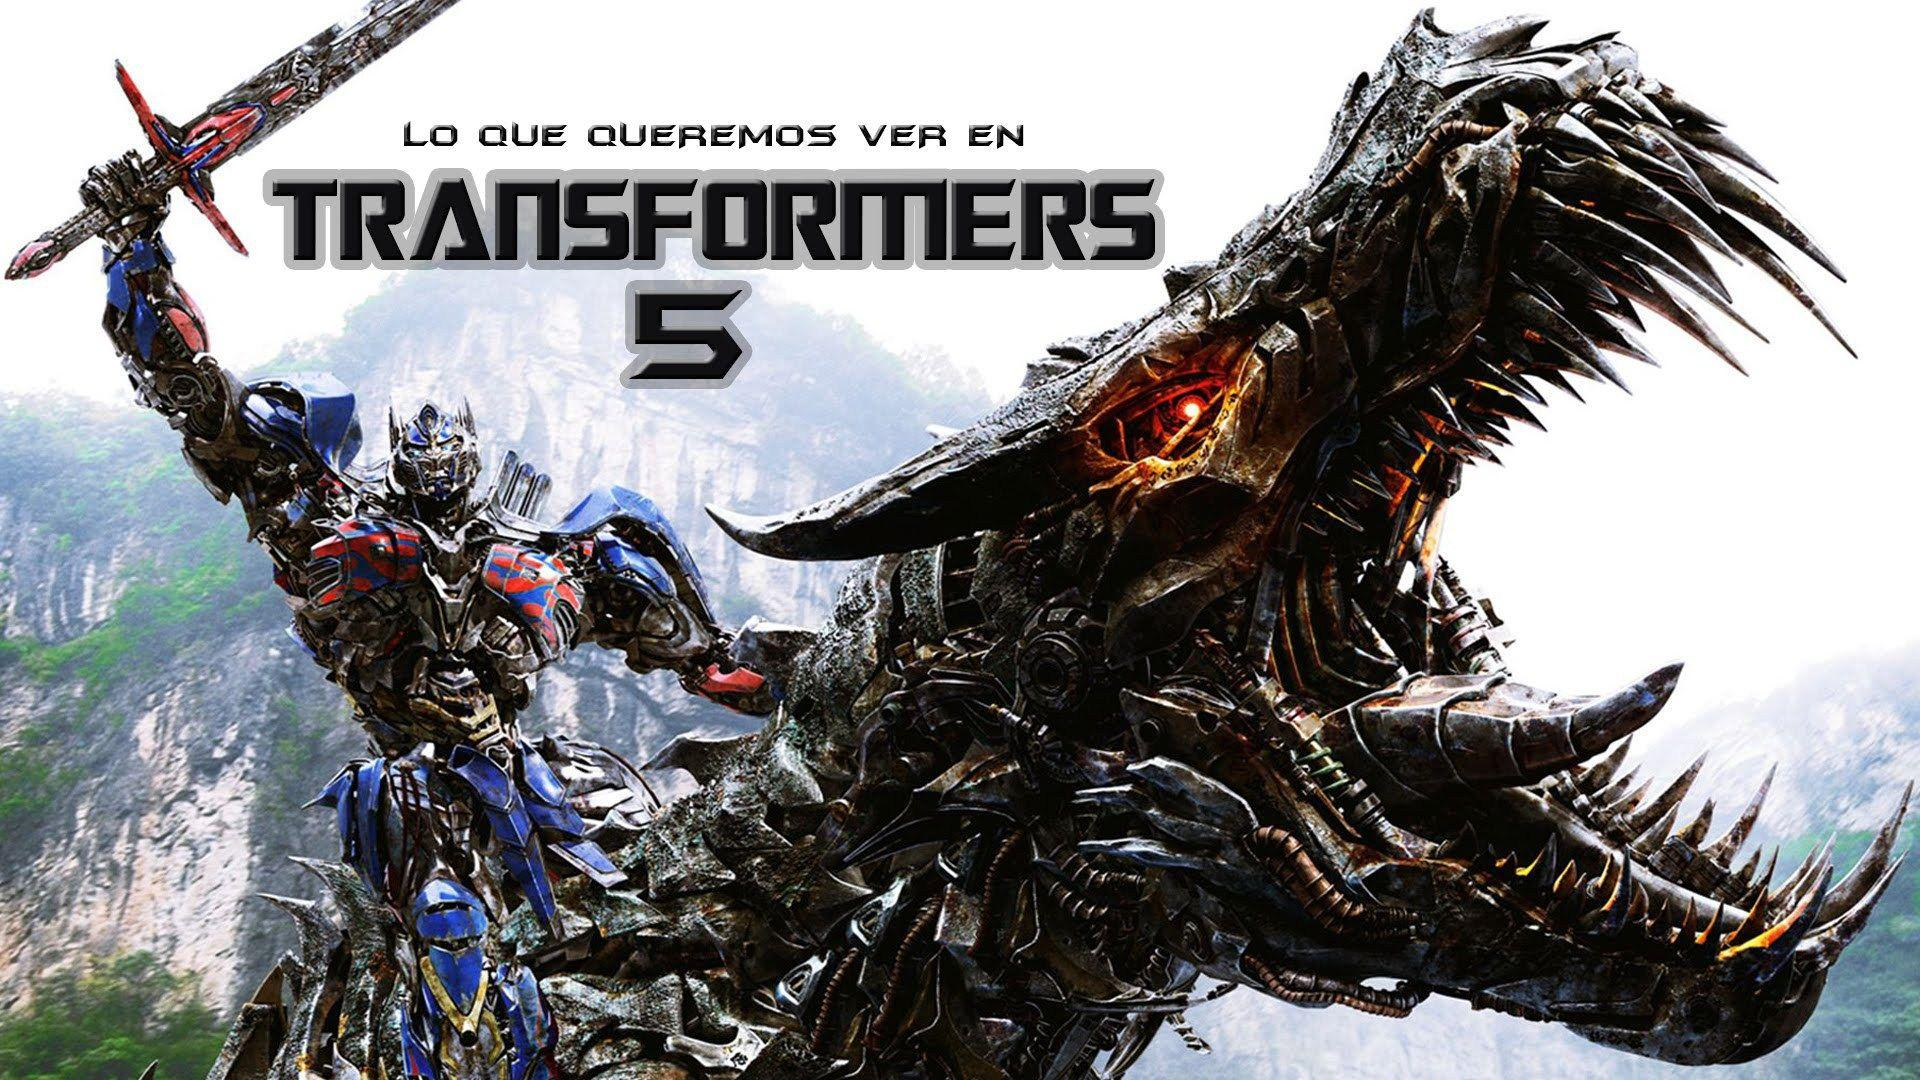 Transformers The Last Knight online video playedto